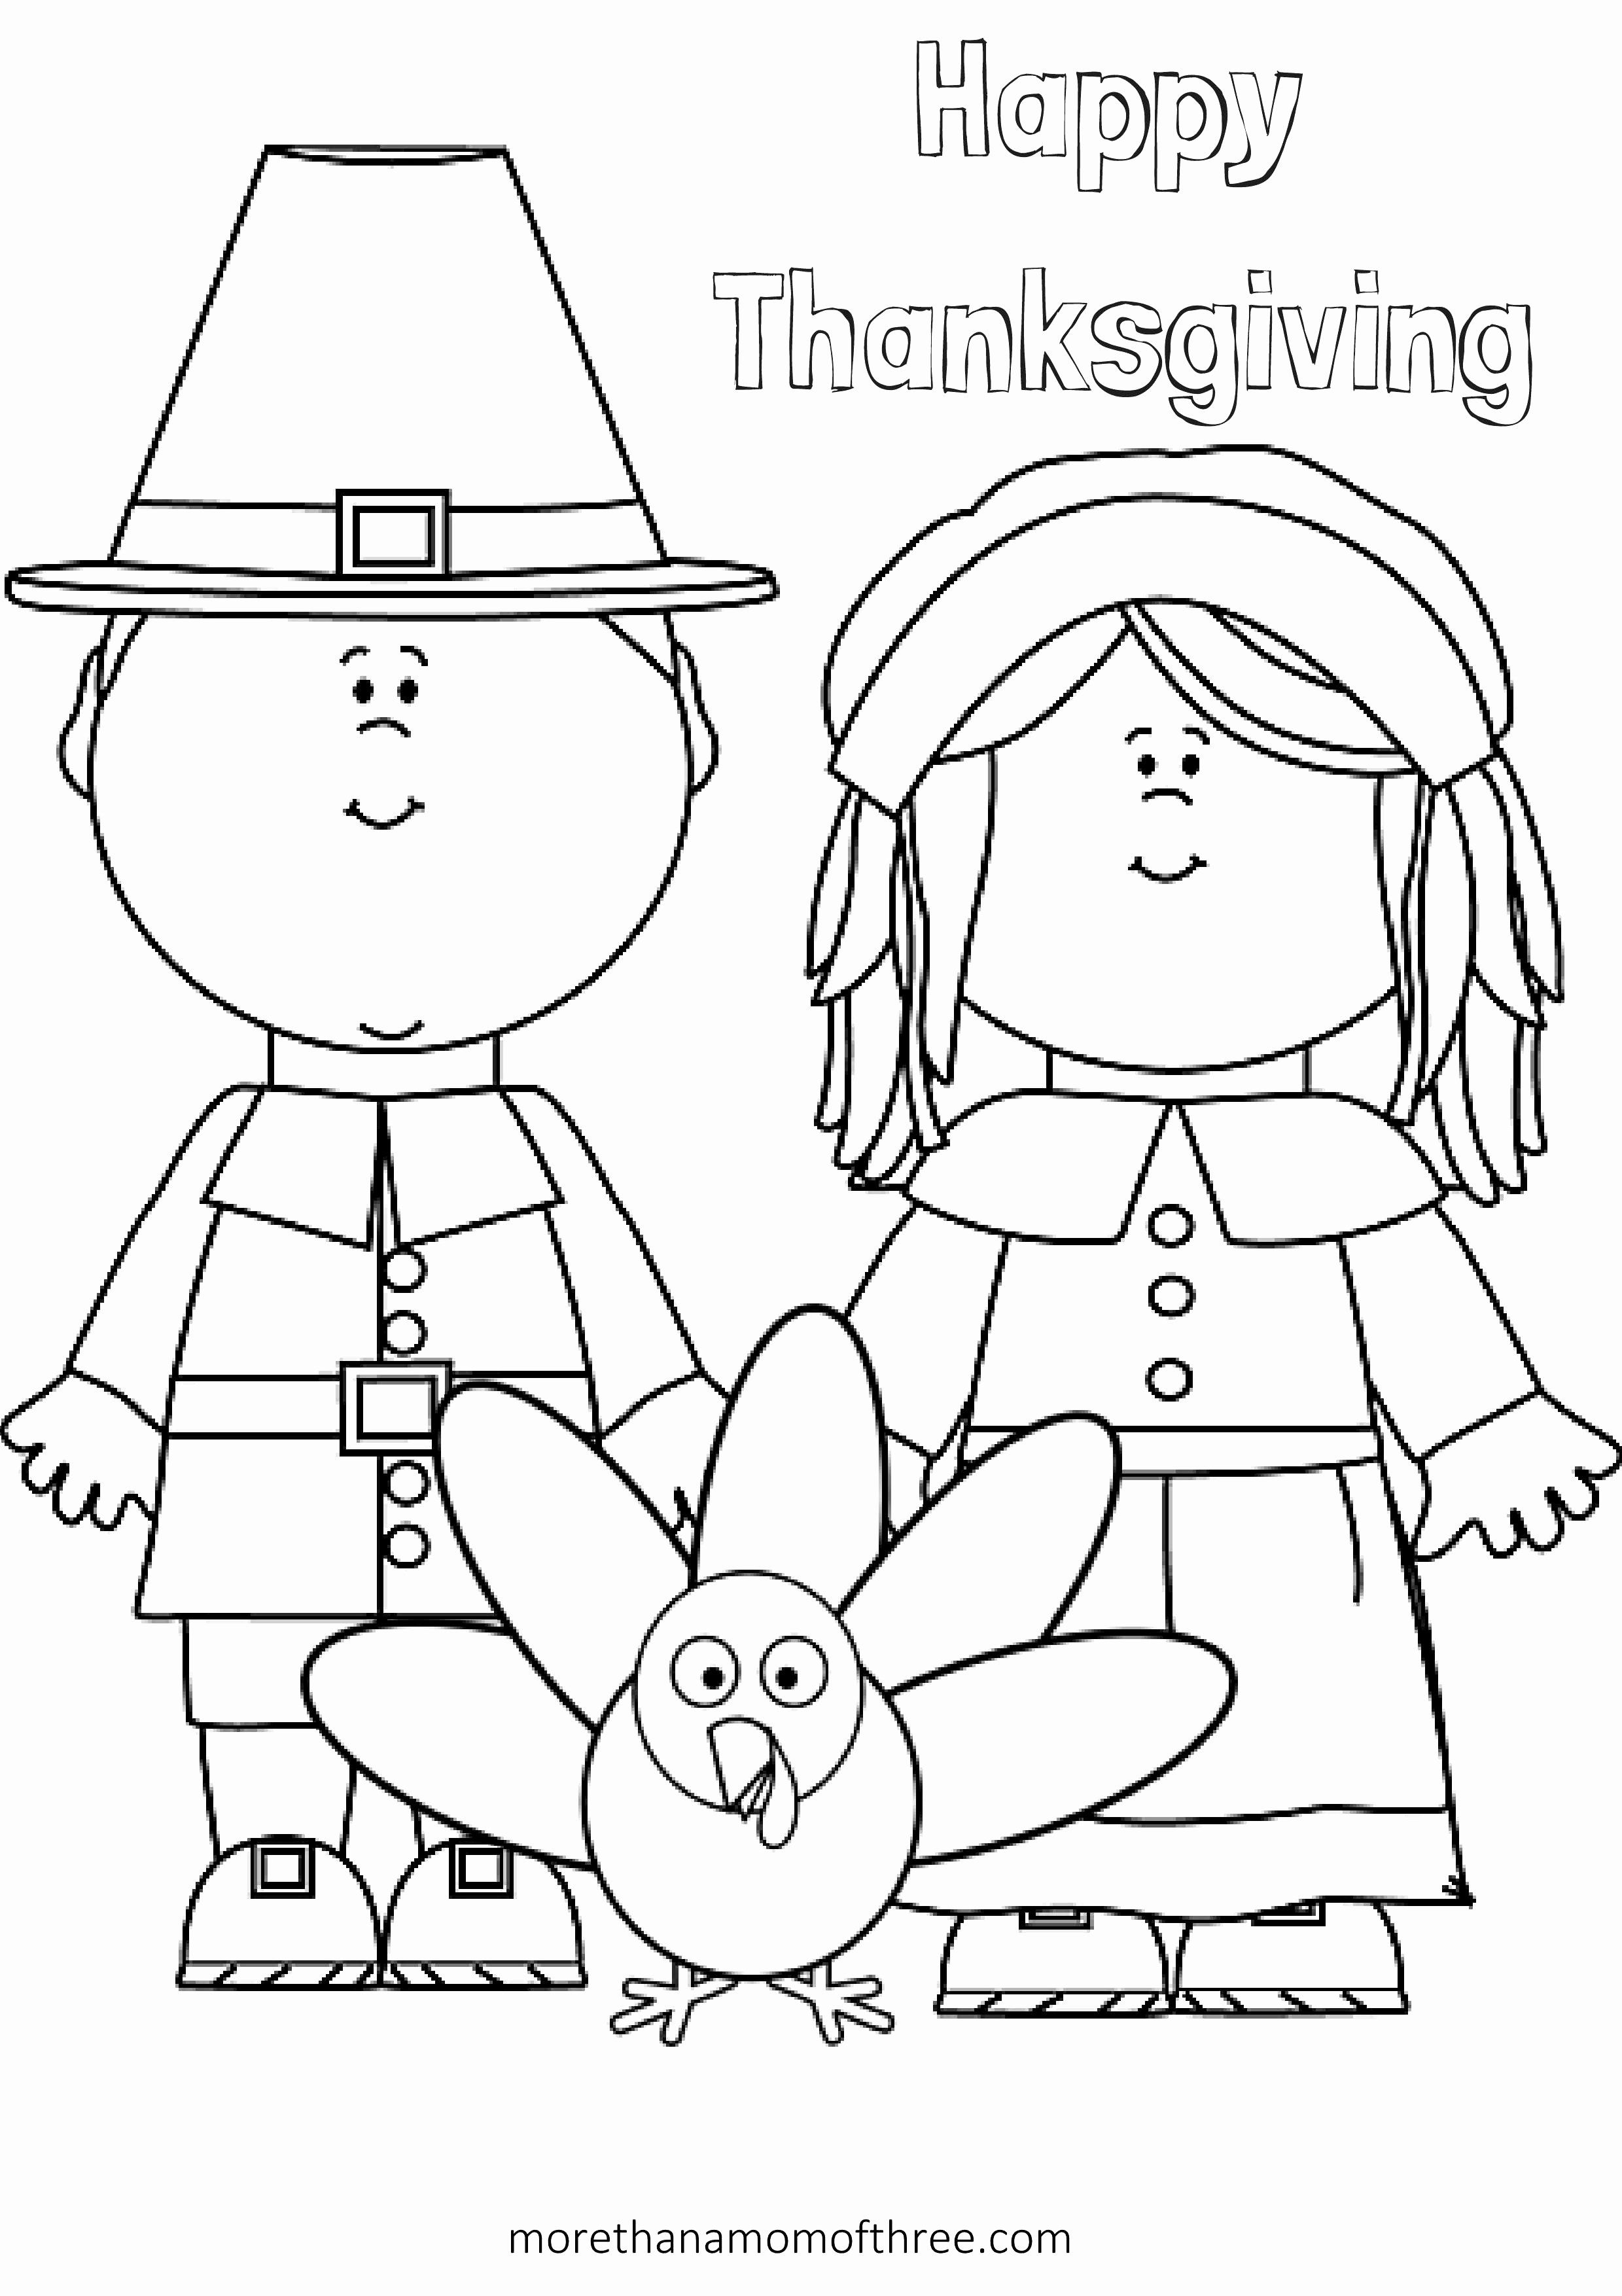 Coloring Pages Cartoons Disney Awesome Thanksgiving